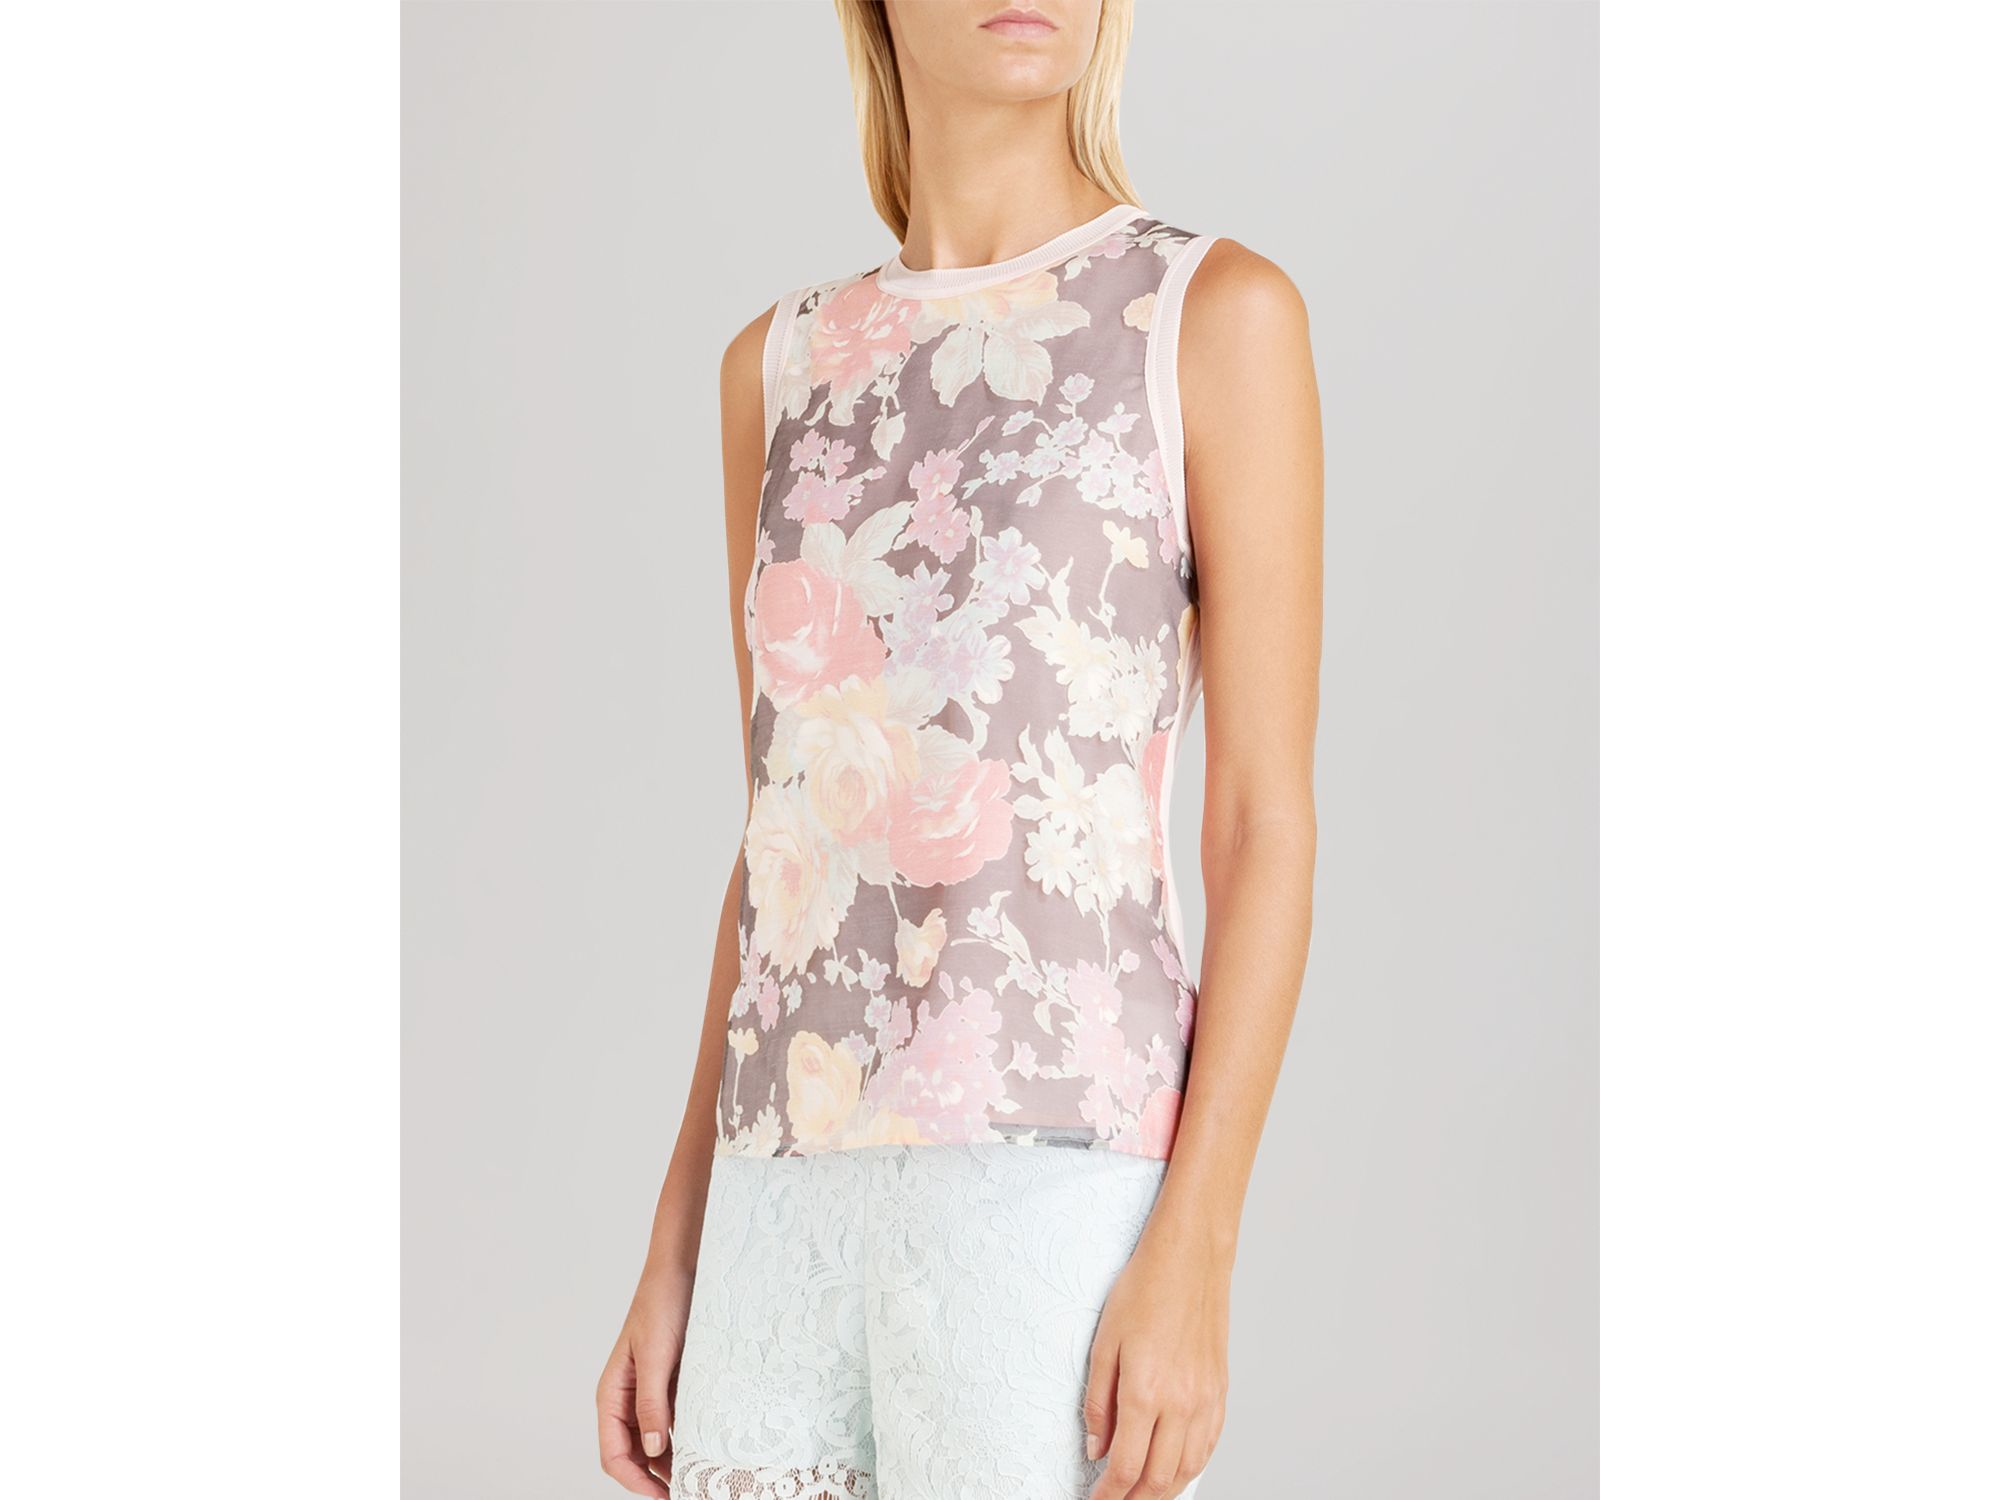 934584298d573a Lyst - Ted Baker Filaki Floral Sleeveless Top in Pink